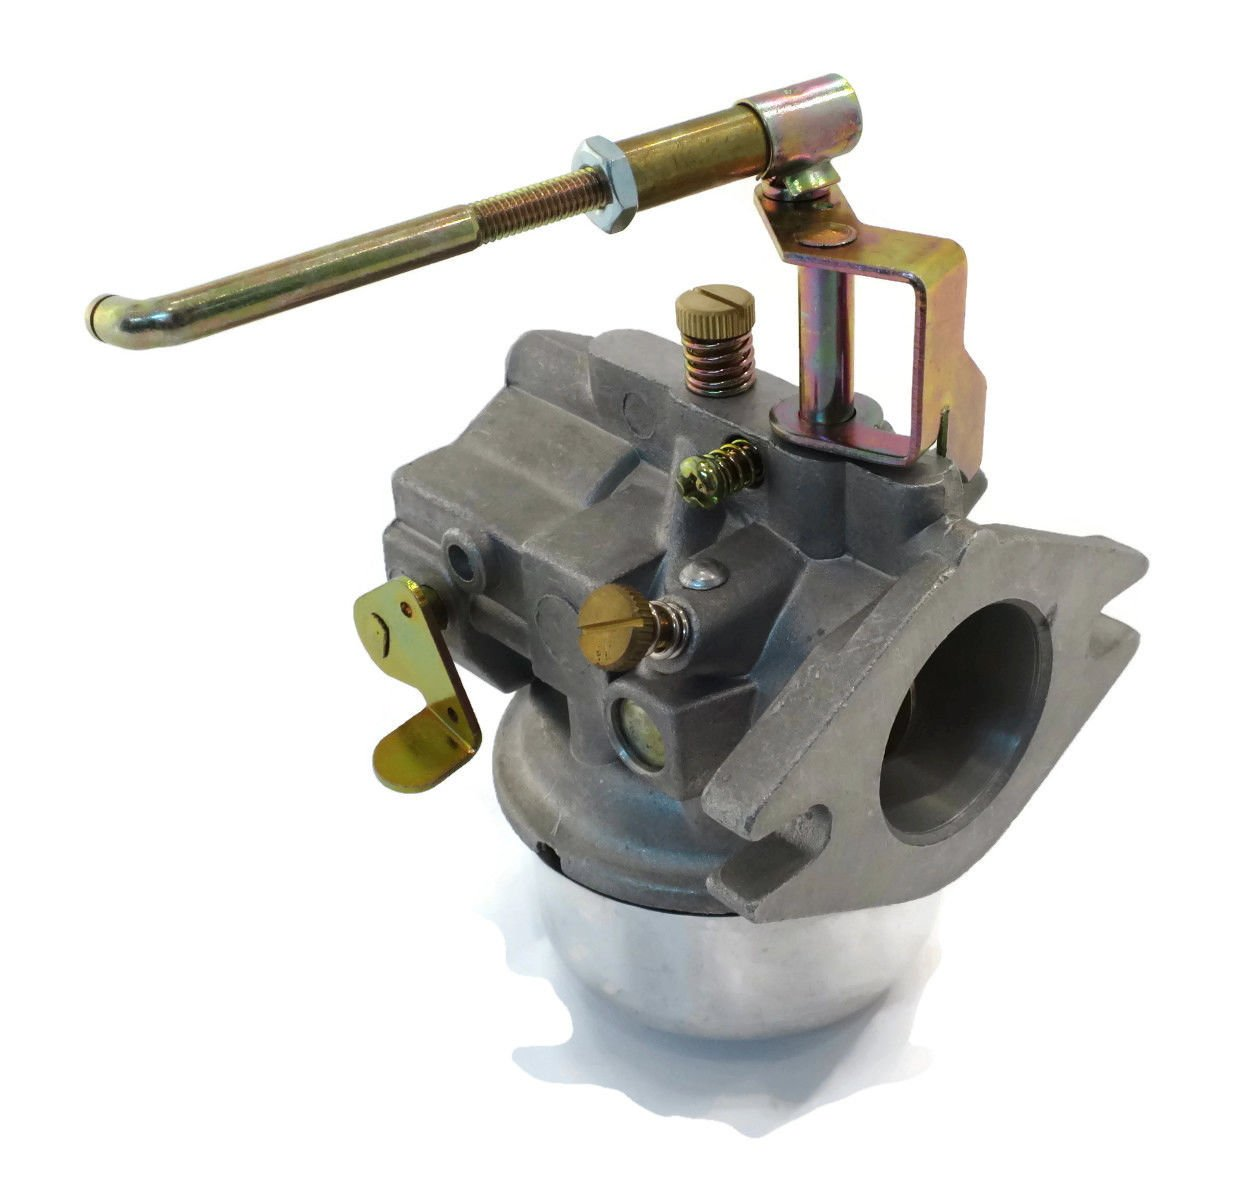 The ROP Shop Carburetor Wheel Horse Tractors Kohler 10 12 14 16 hp K-Series & Magnum Engines